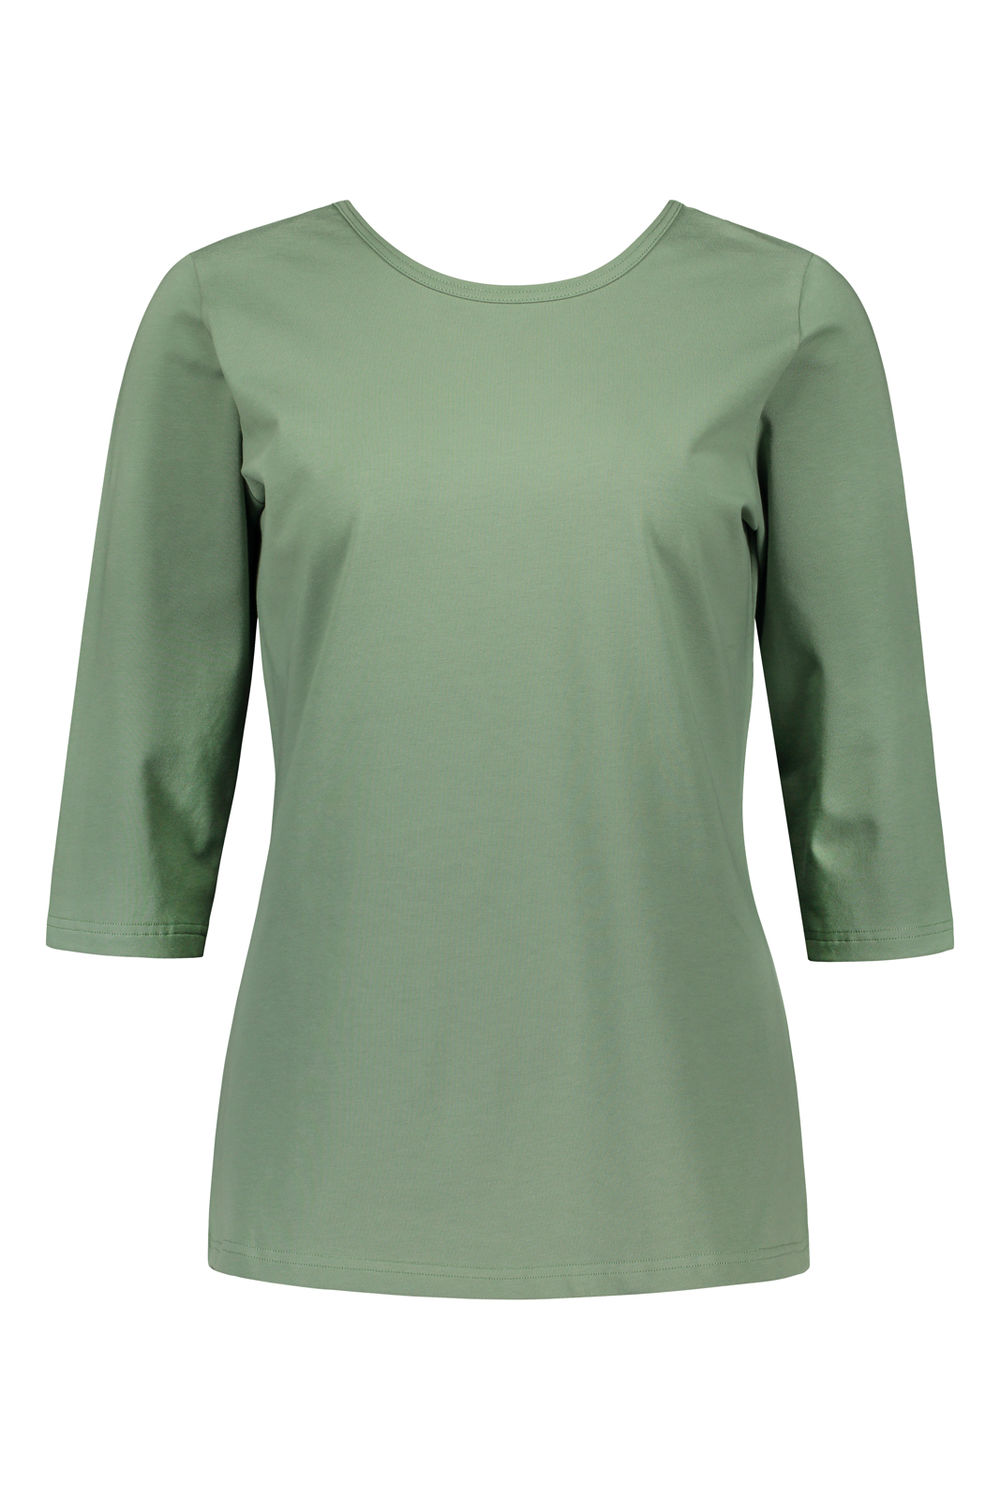 KAIKO WOMEN CROSS SHIRT, SAGE